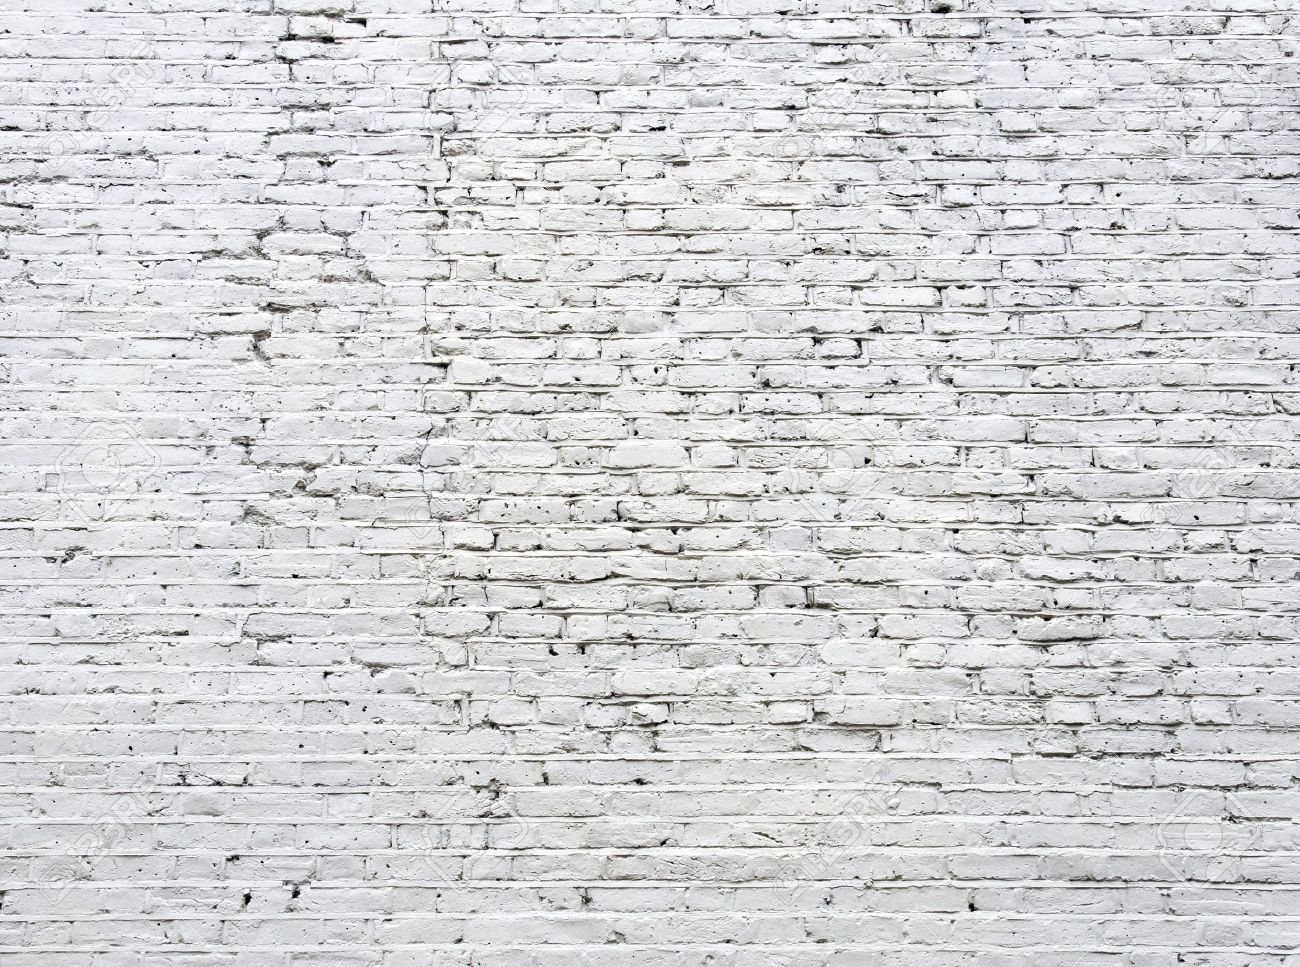 Cracked White Brick Wall Background Stock Photo